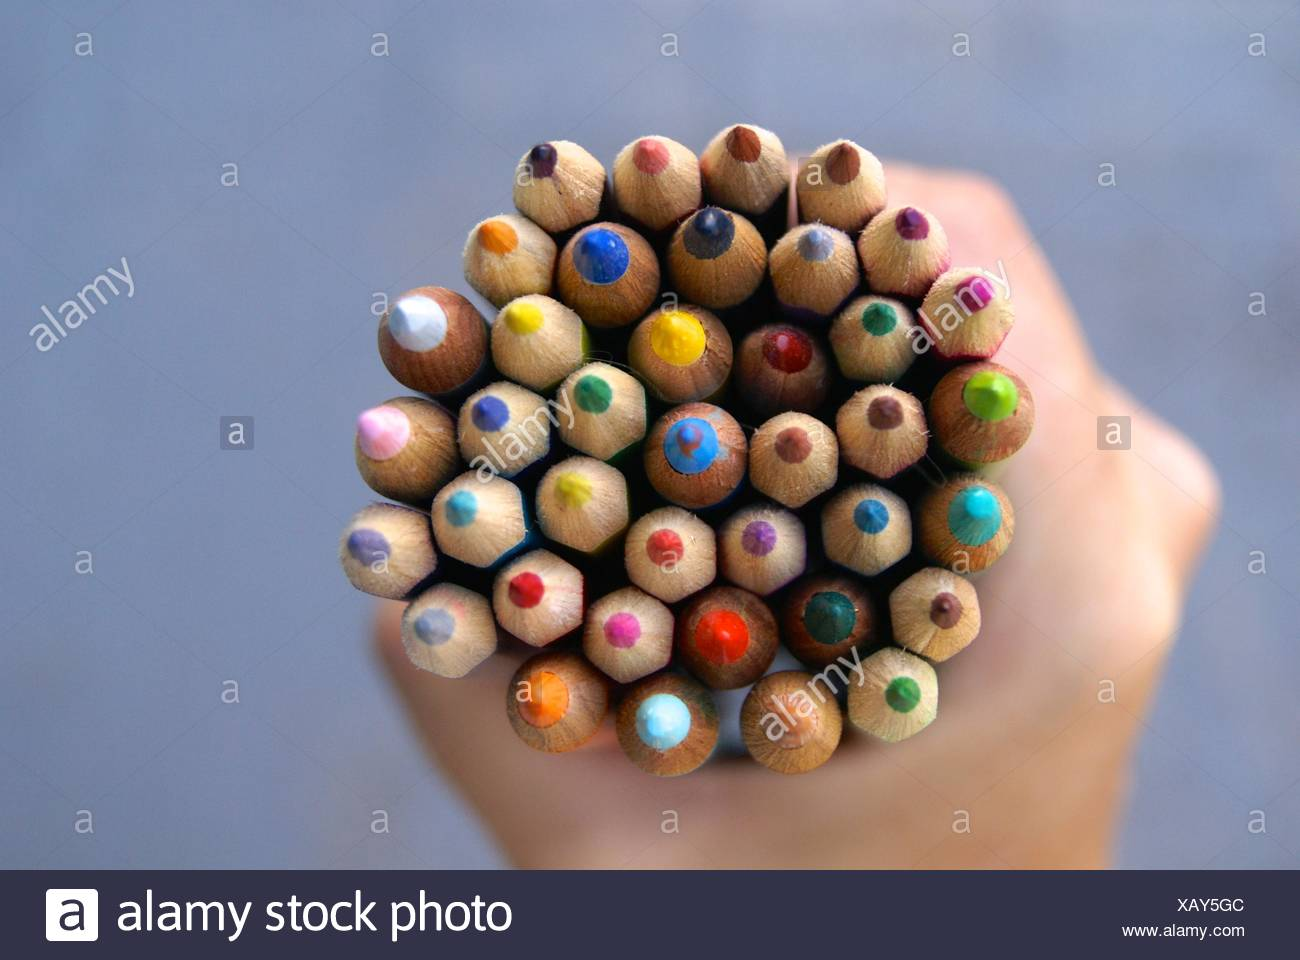 Human hand holding Coloured Pencils Photo Stock